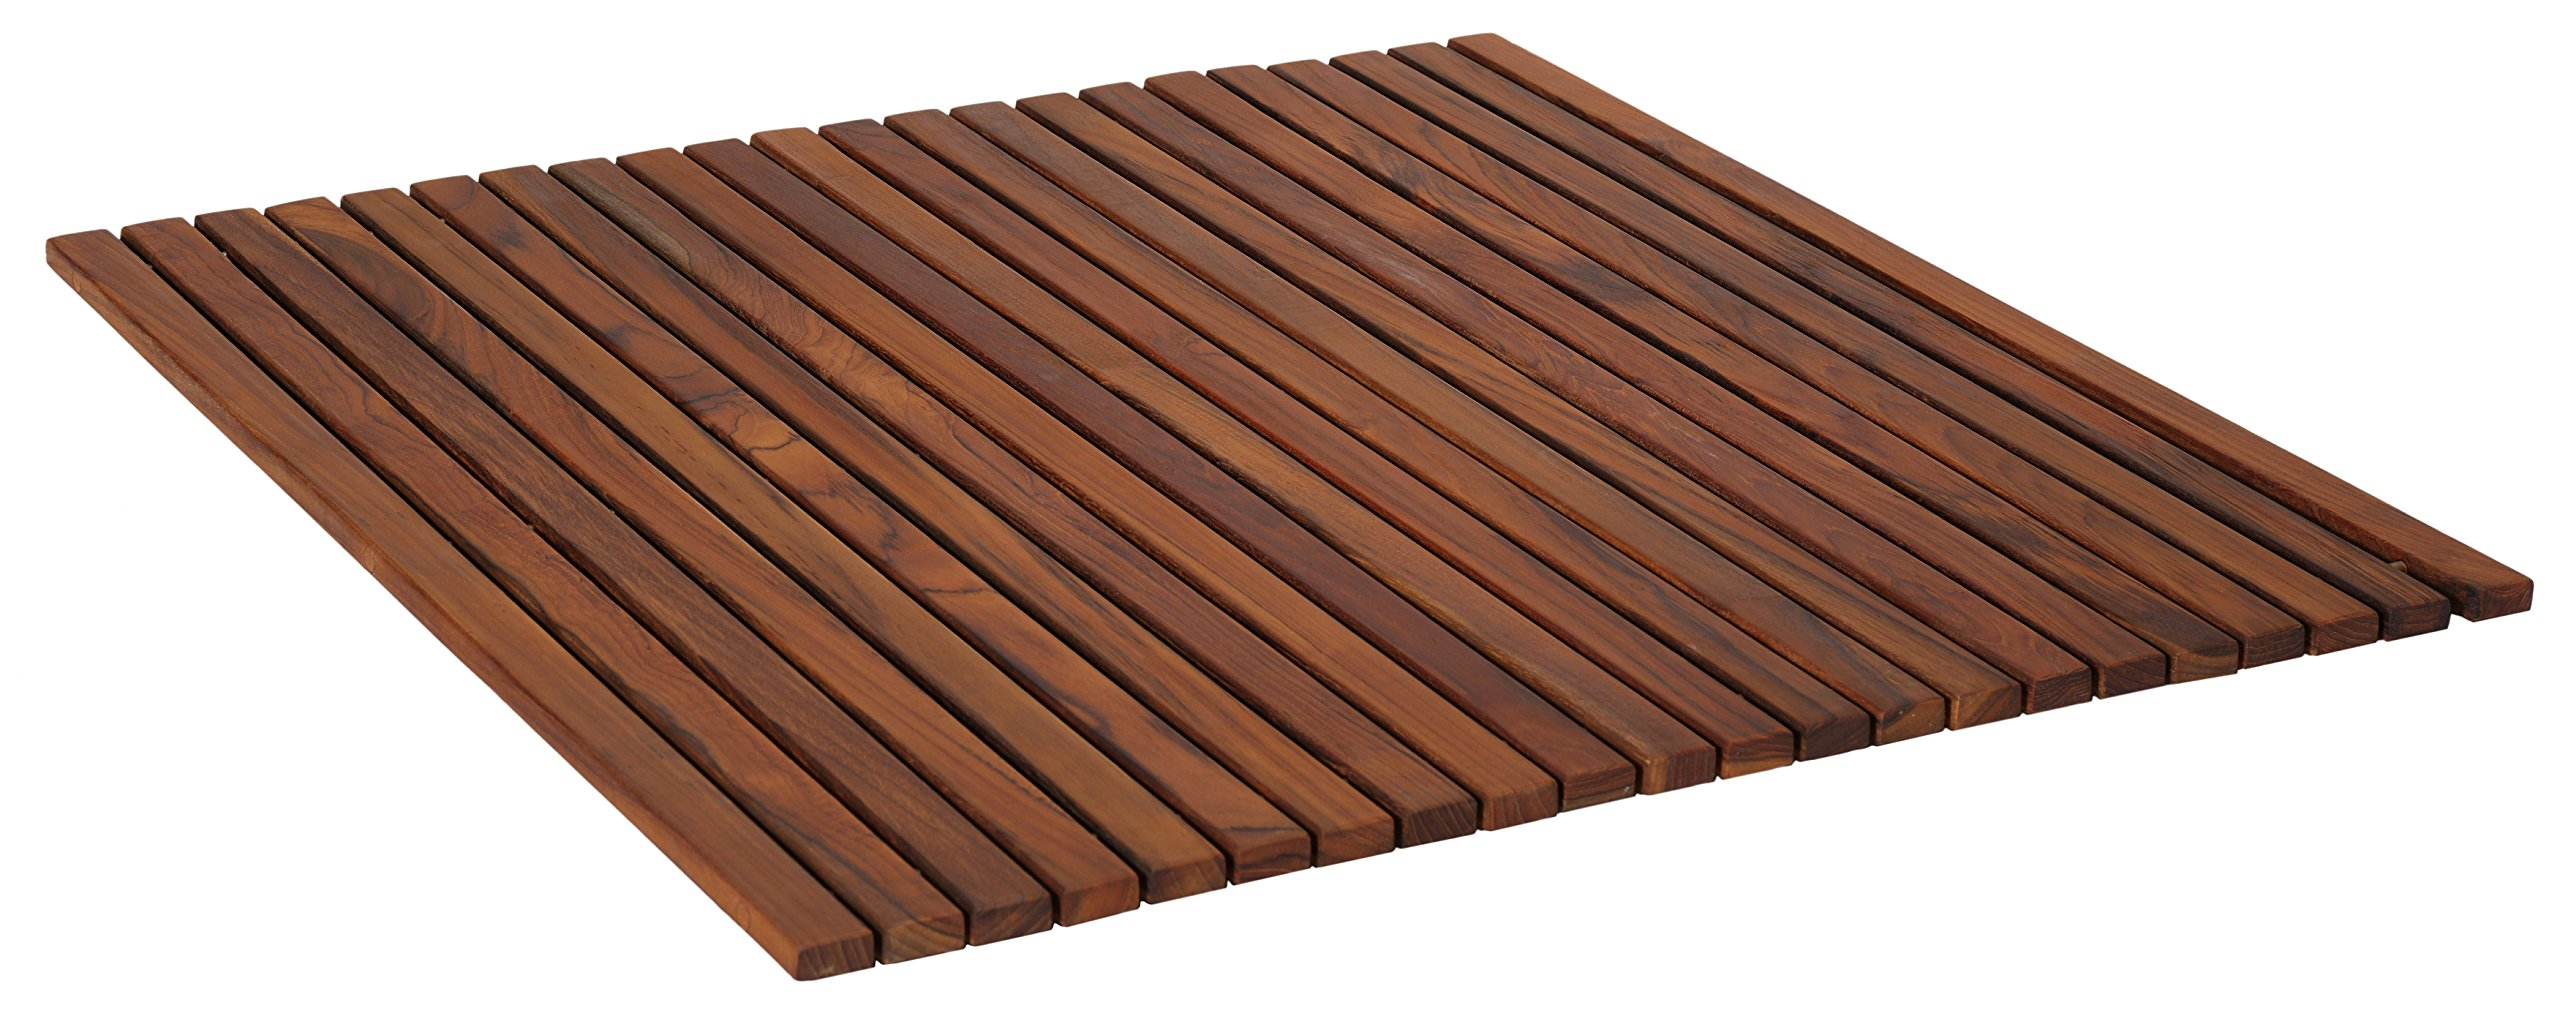 Bare Decor Fuji String Spa Shower Mat in Solid Teak Wood Oiled Finish. XL Square 30'' x 30'' by Bare Decor (Image #2)